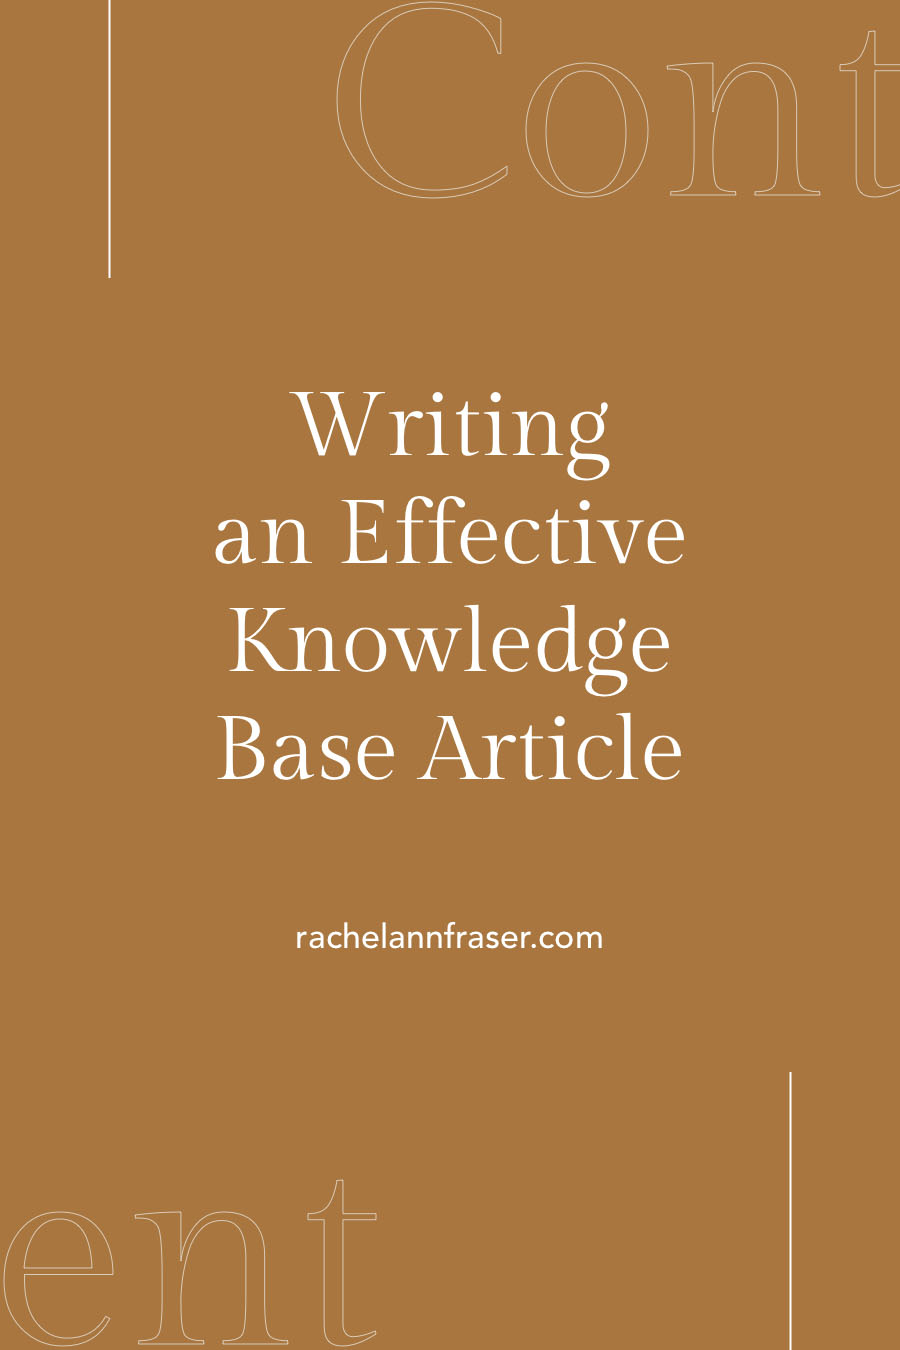 Writing an Effective Knowledge Base Article